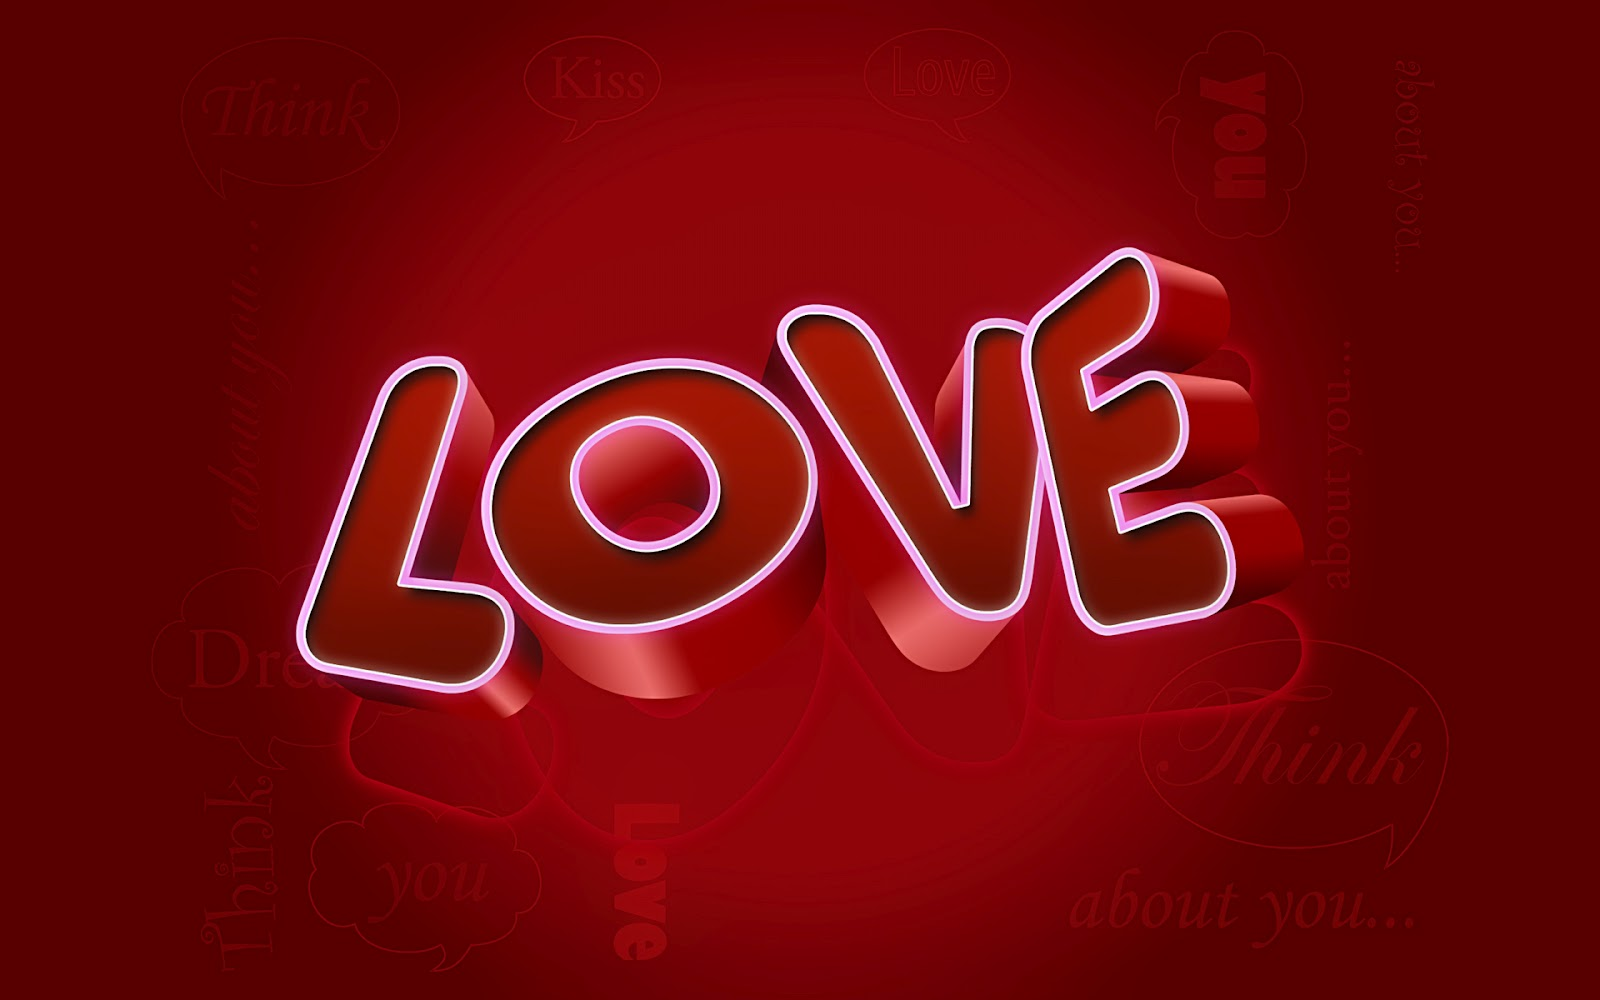 Love You Wallpaper New : New Latest i love you wallpapers on this valentines day 2016